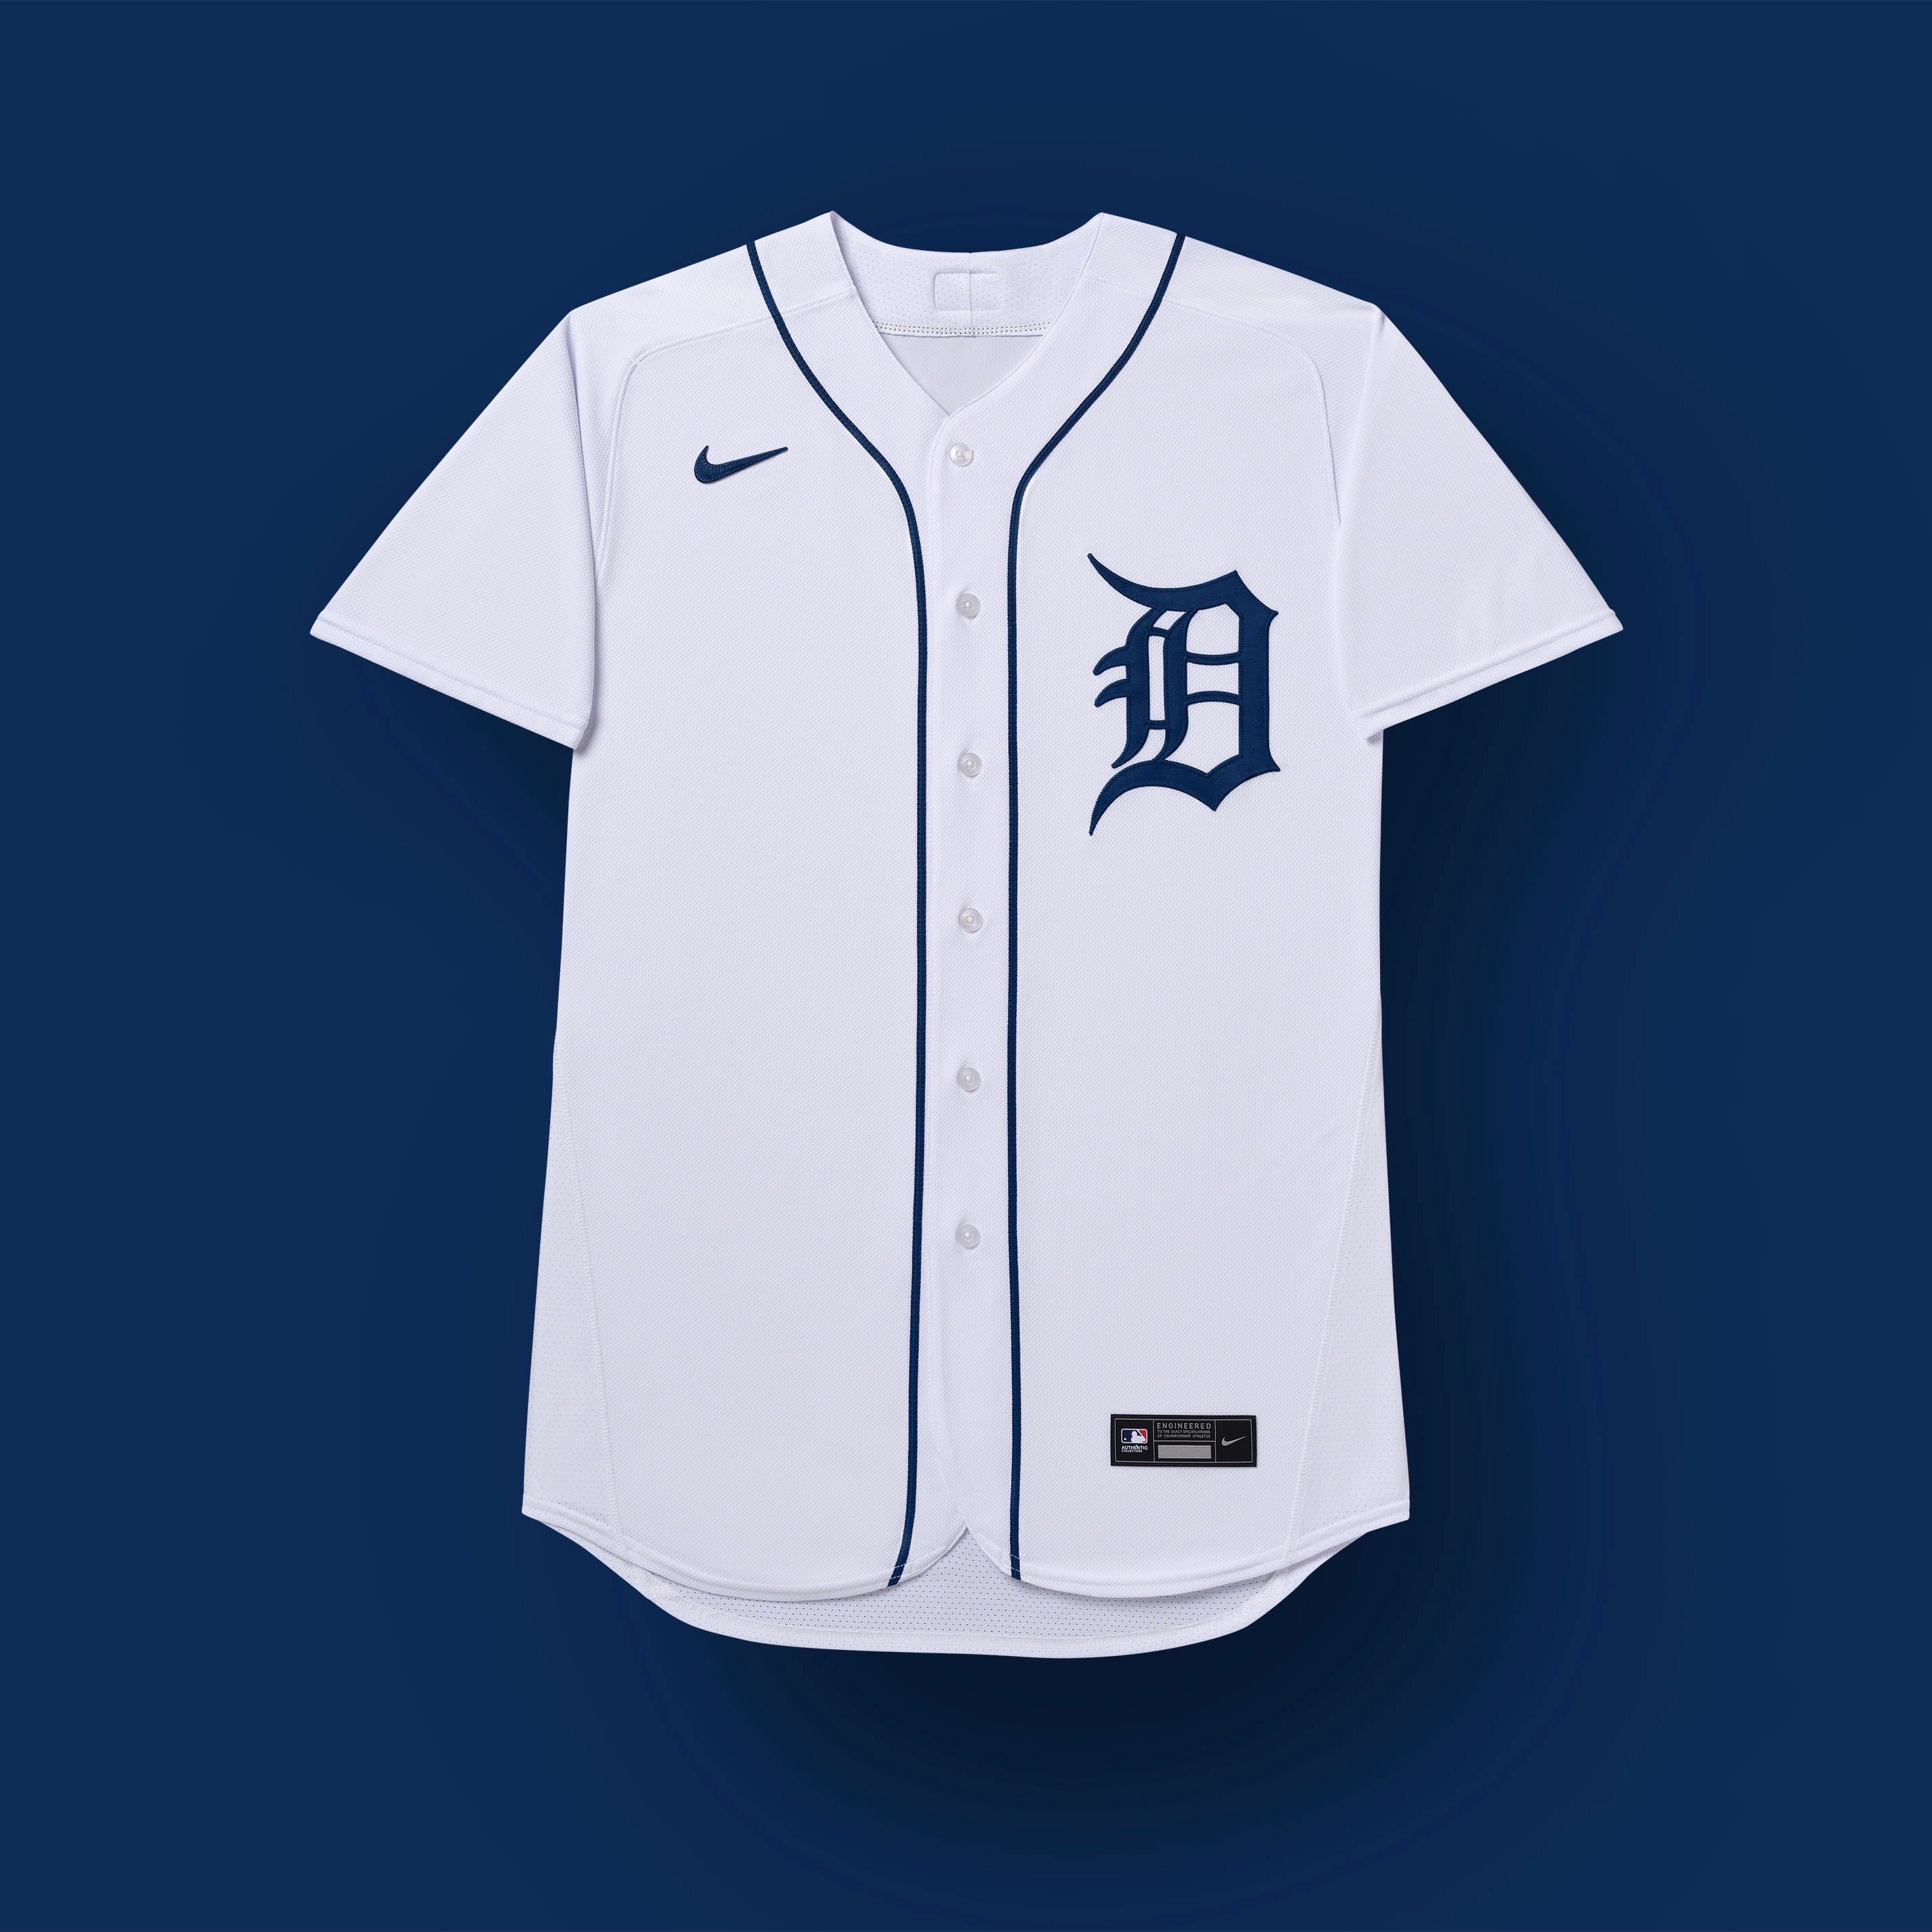 detroit tigers 2020 uniforms